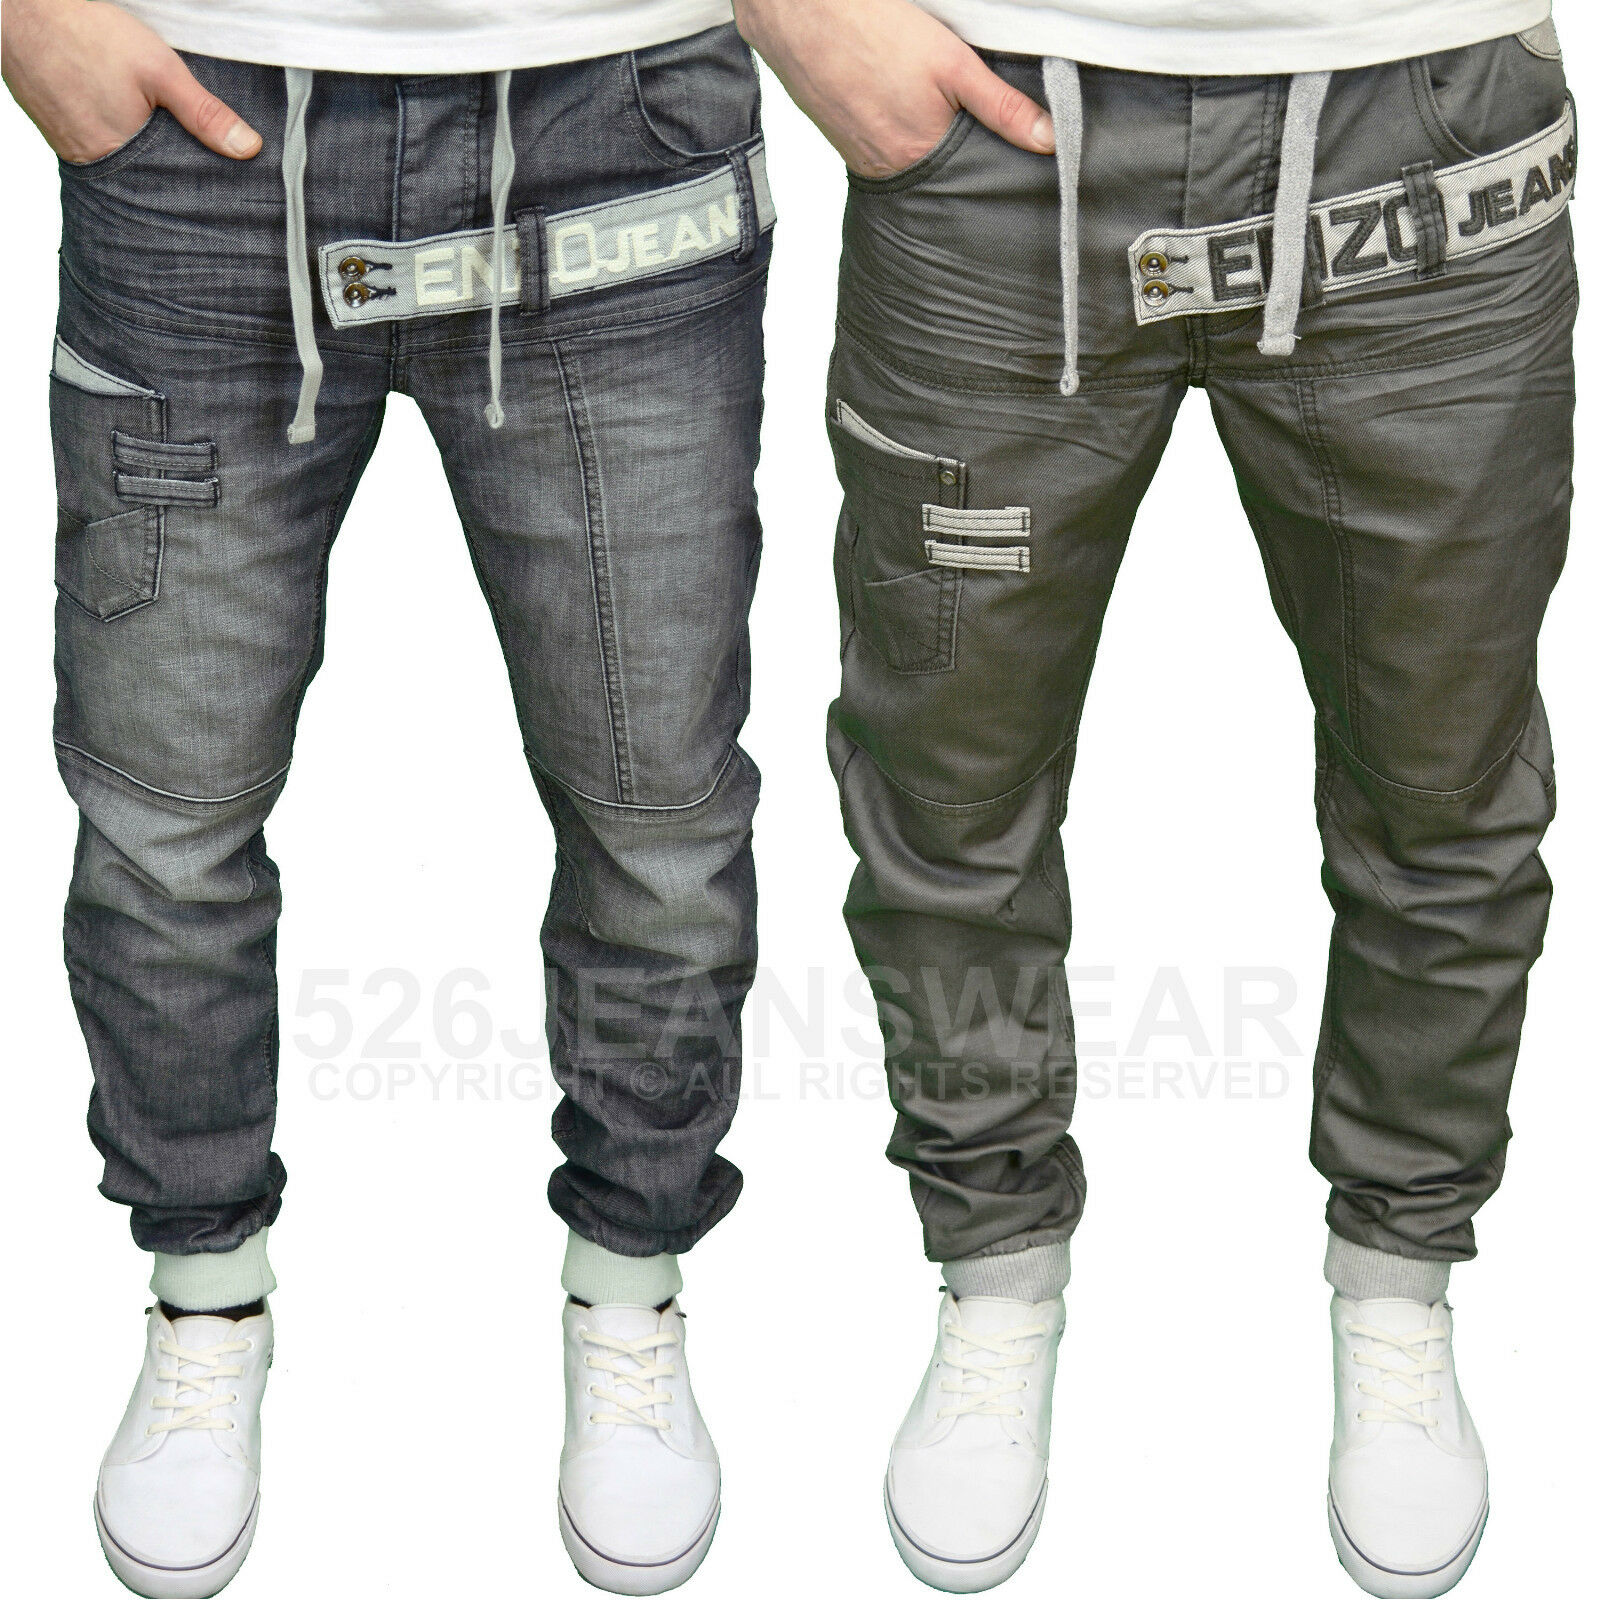 You can now shop our branded range of mens joggers online for less in our exclusive sale! Check out our full range of classic joggers, cuffed joggers and slim fit joggers available from our leading brands including Converse, Creative Recreation and DKNY.